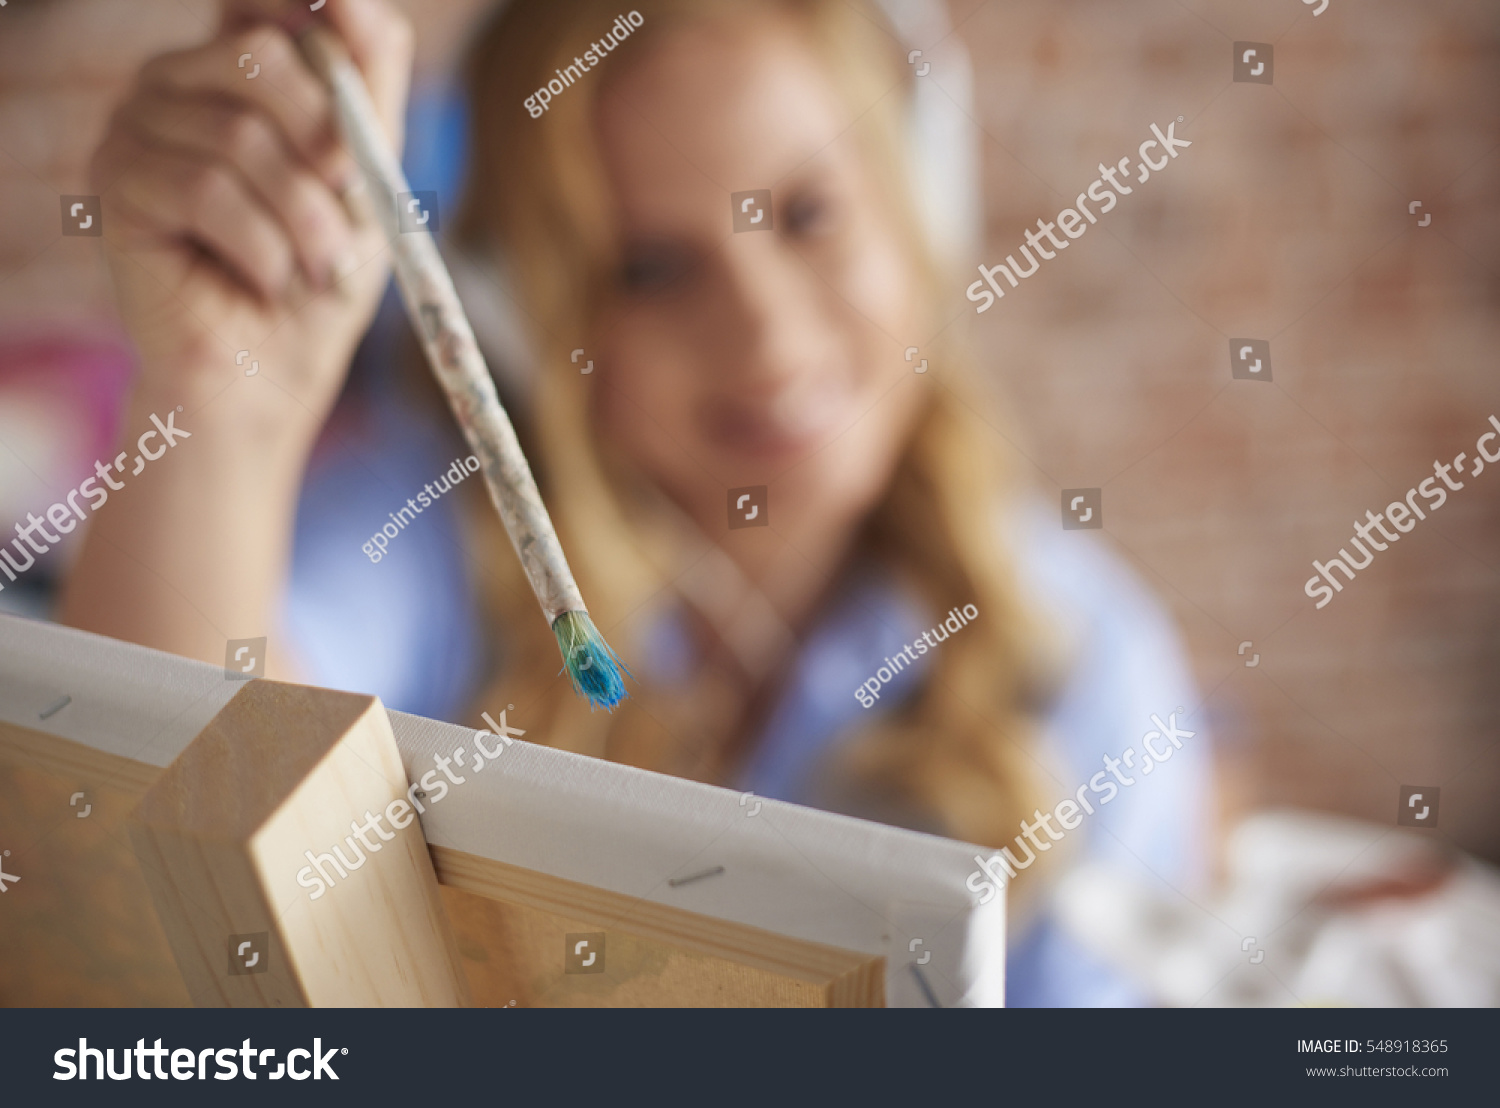 Adding Her Personal Touch Picture Stock Photo 548918365 - Shutterstock